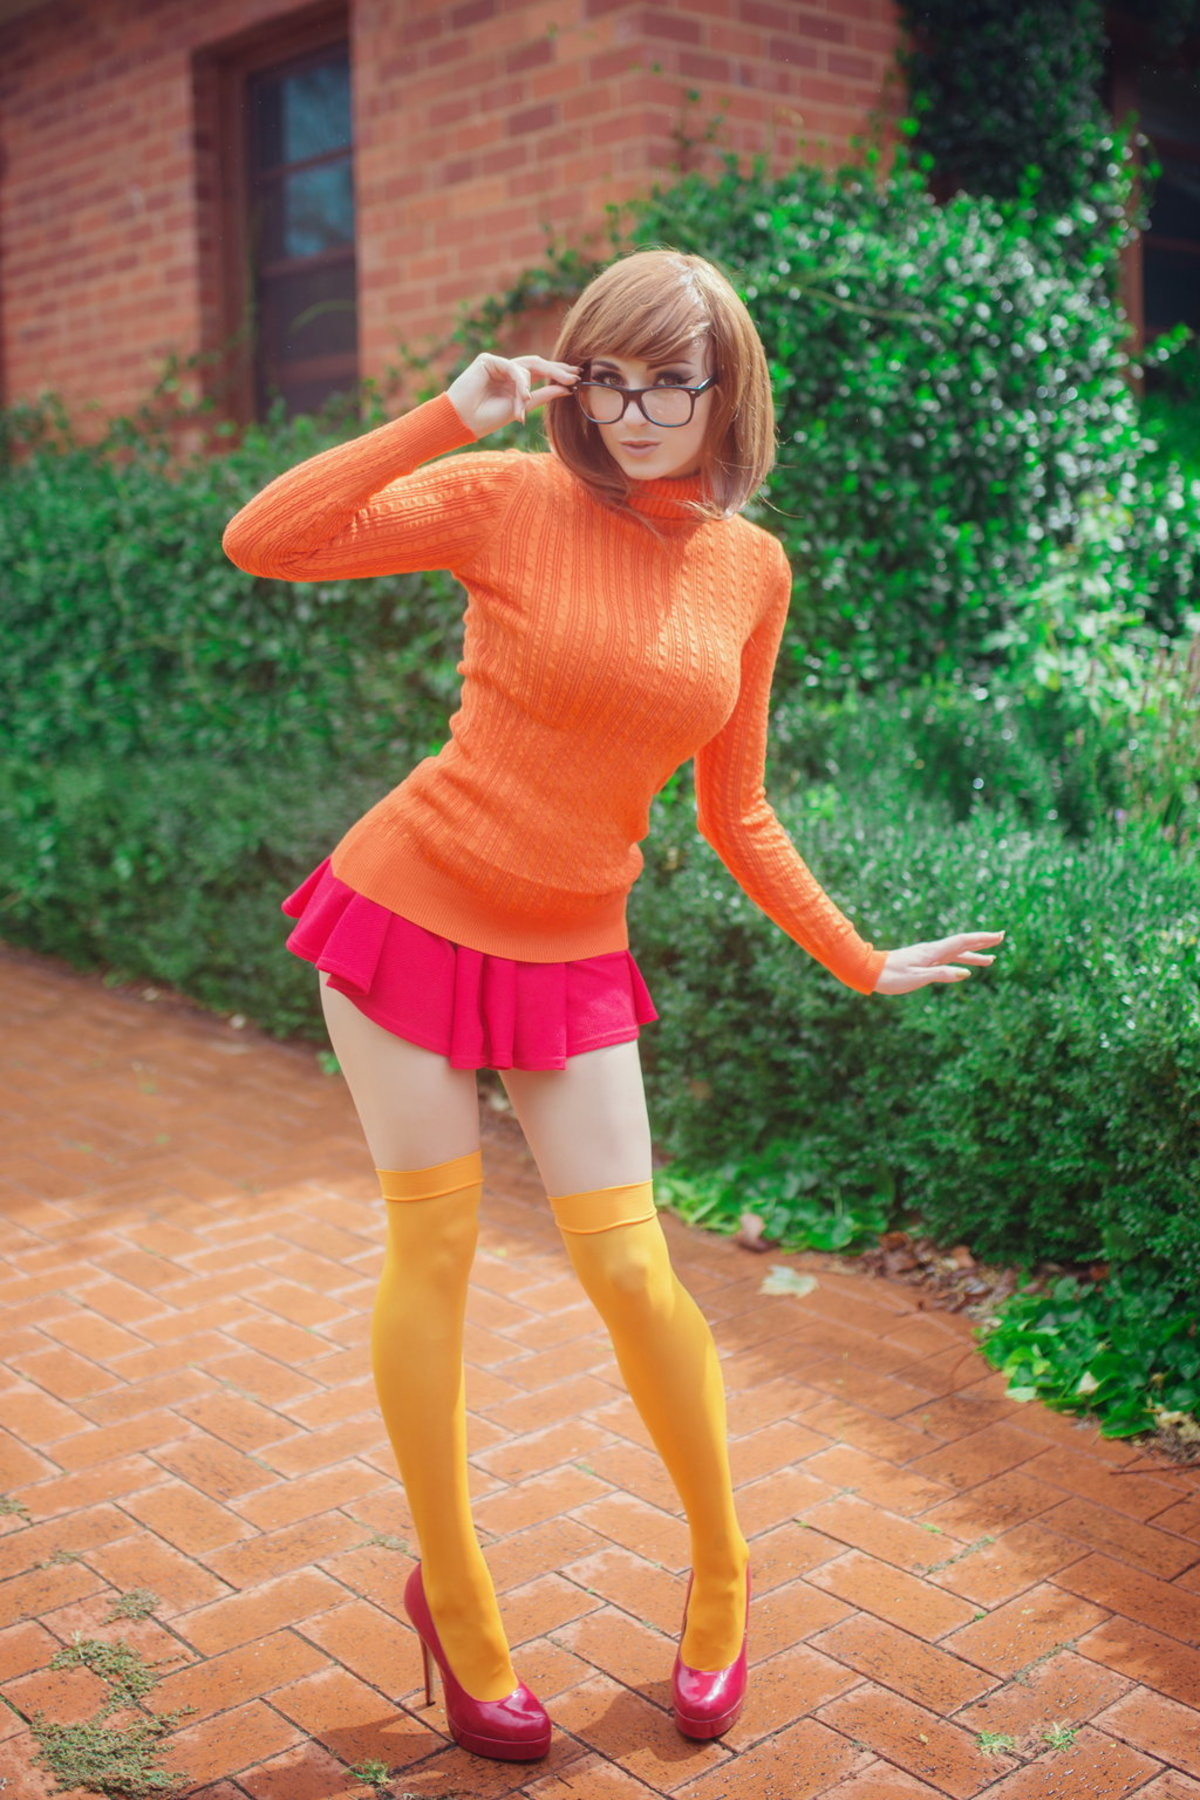 Velma from Scooby Doo Cosplay. .. I would hold her hand so fricking hard